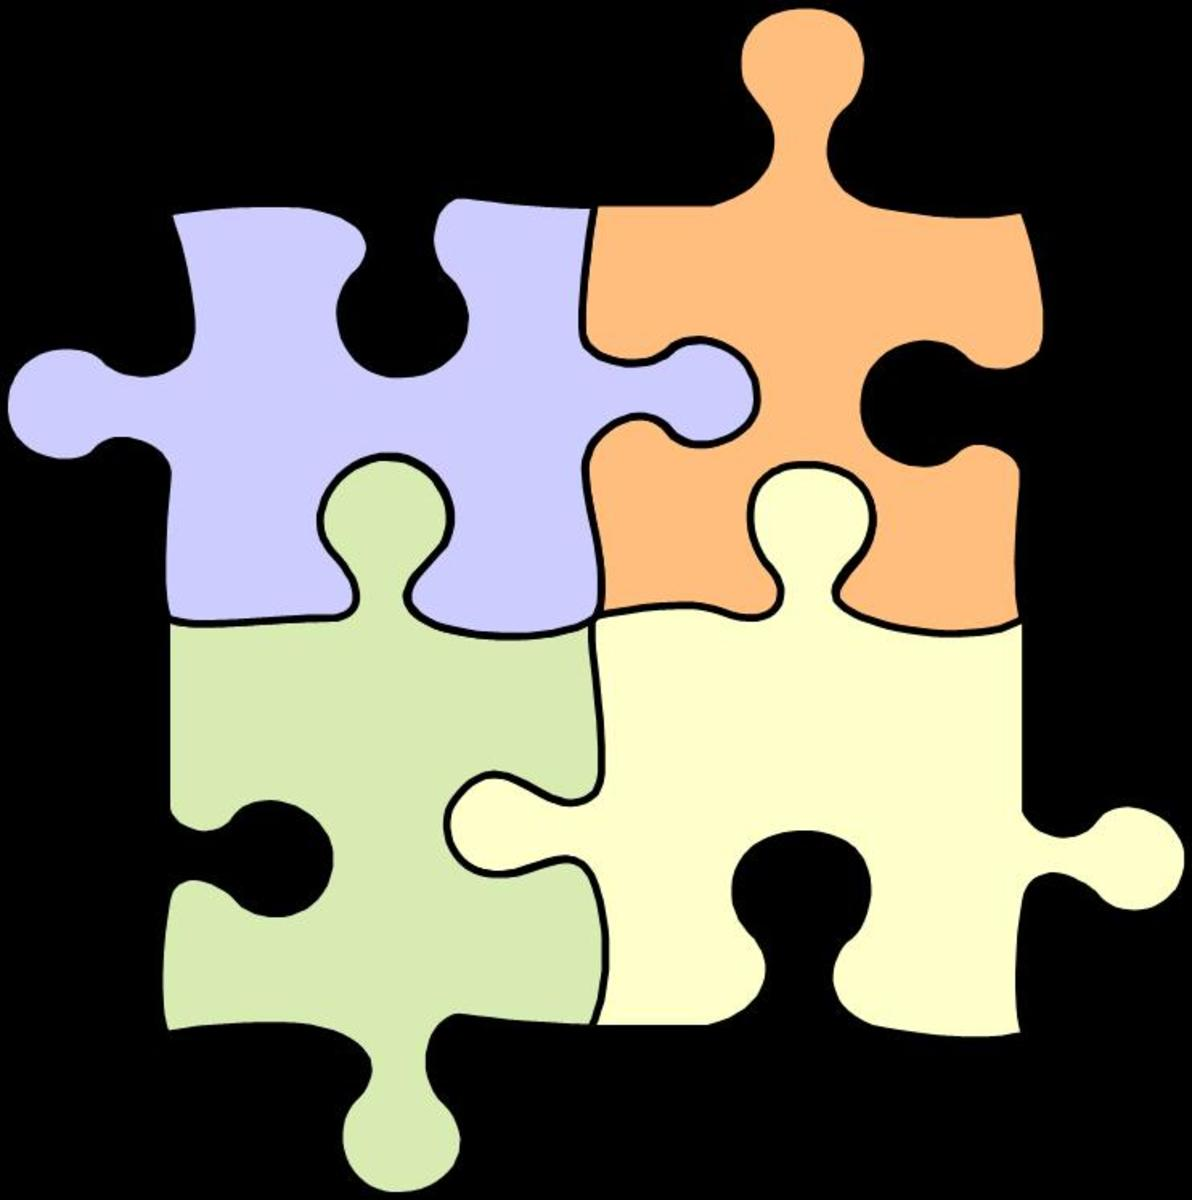 A campaign should follow four well-planned phases like the pieces of a puzzle.